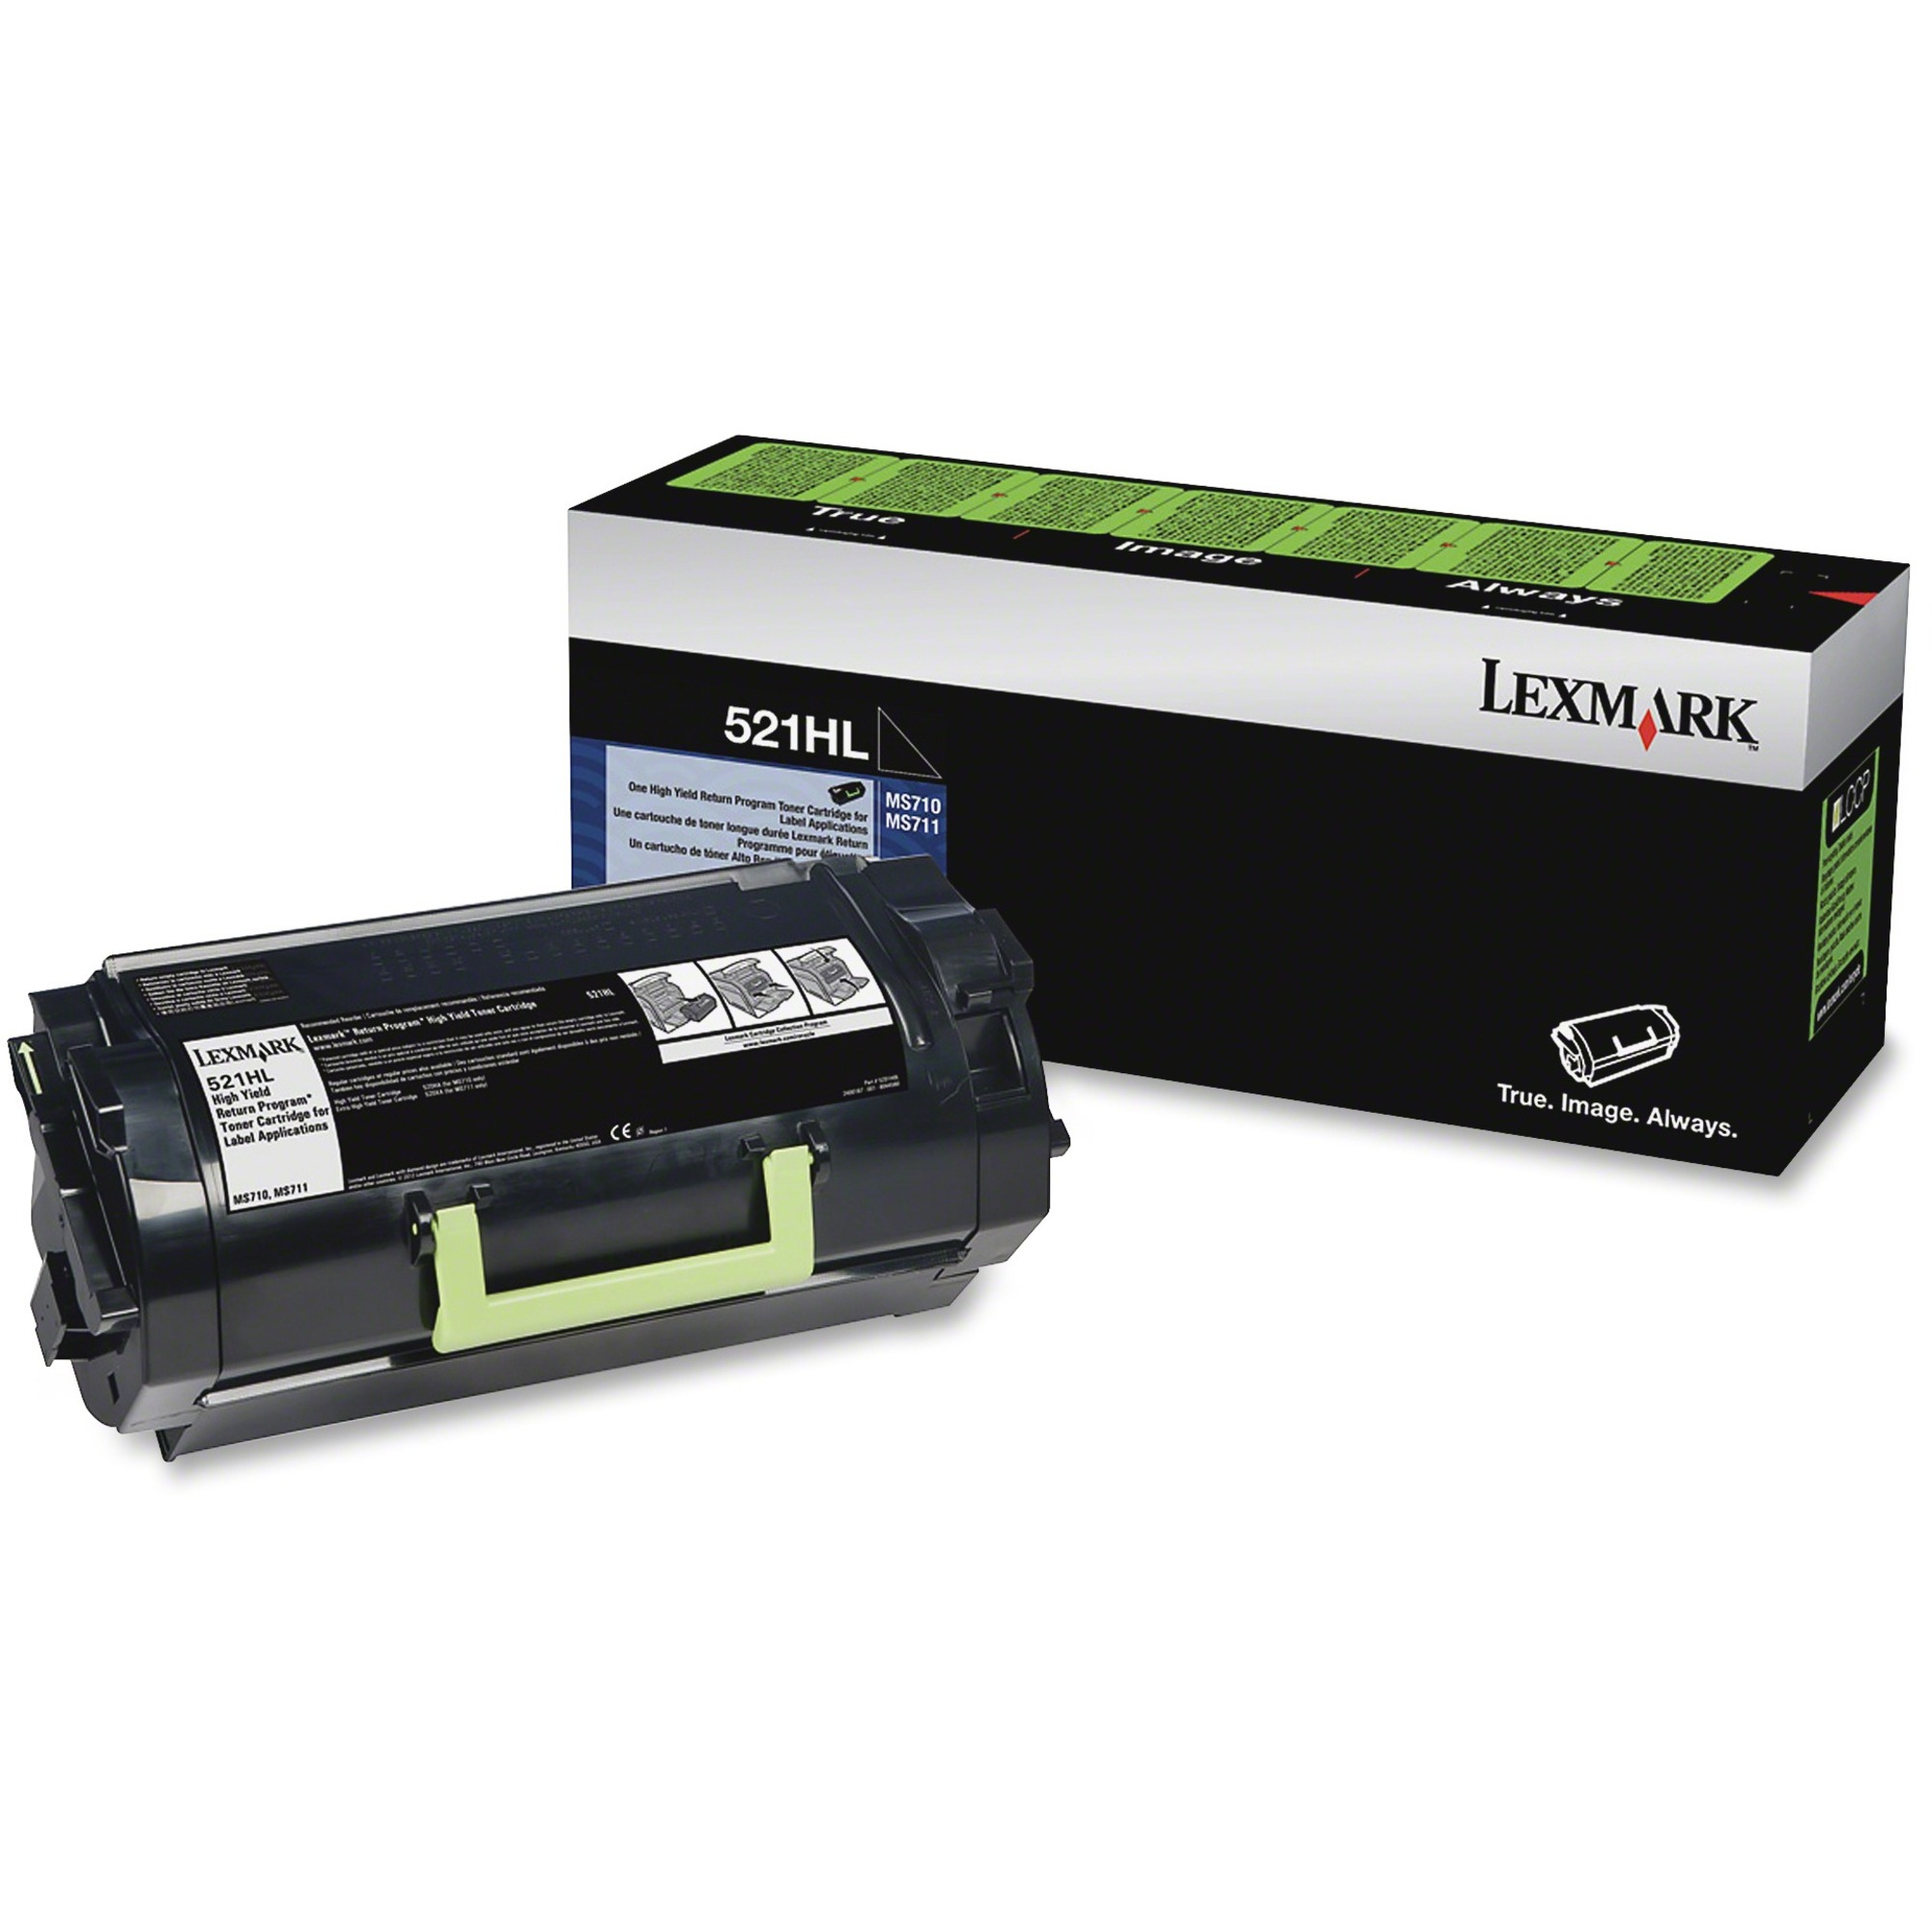 Lexmark 521HL Return Program Toner Cartridge